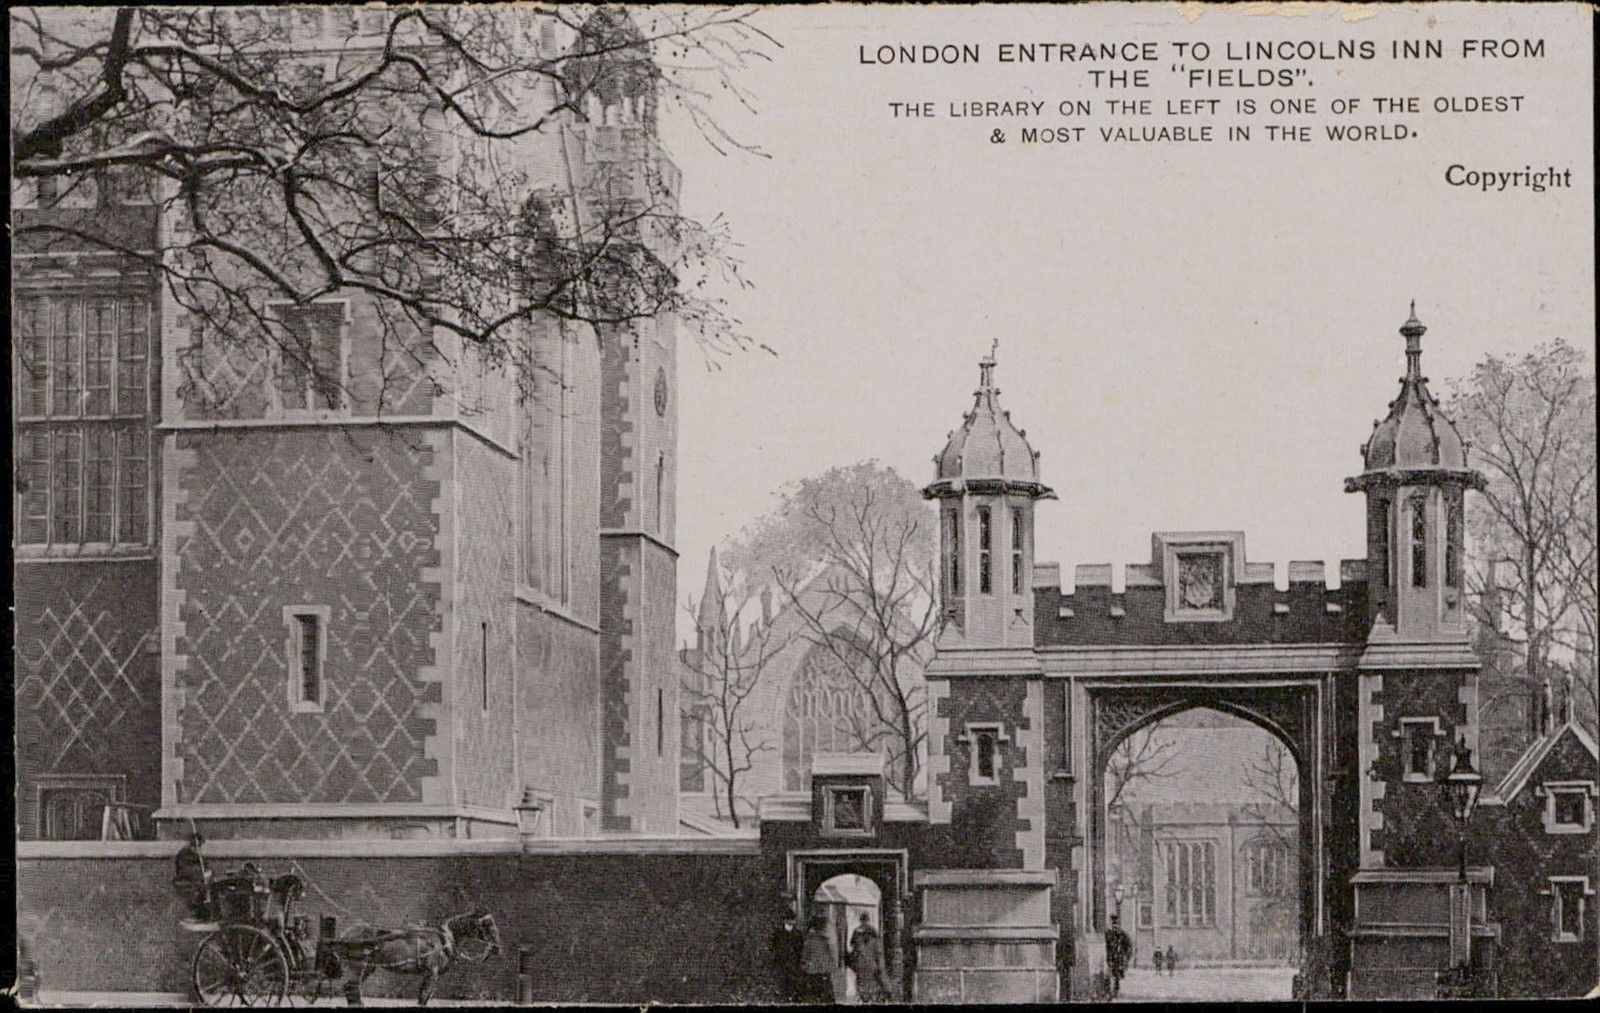 London Entrance To Lincolns Inn From The Fields HipPostcard